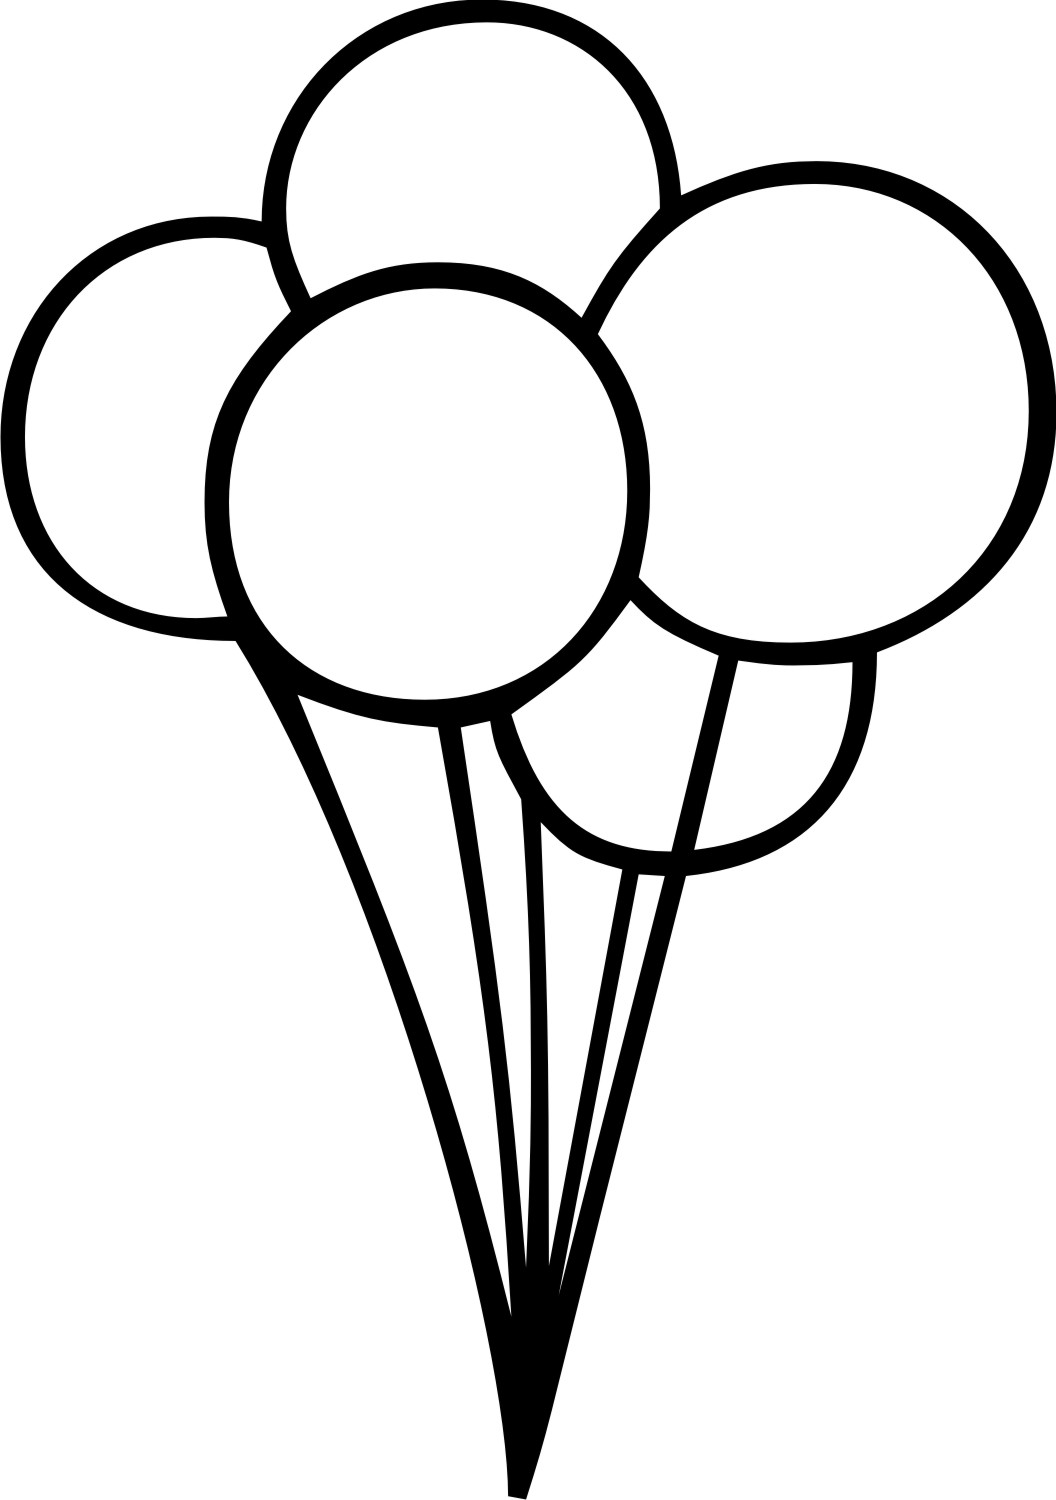 1056x1500 Balloon Drawing Line For Free Download